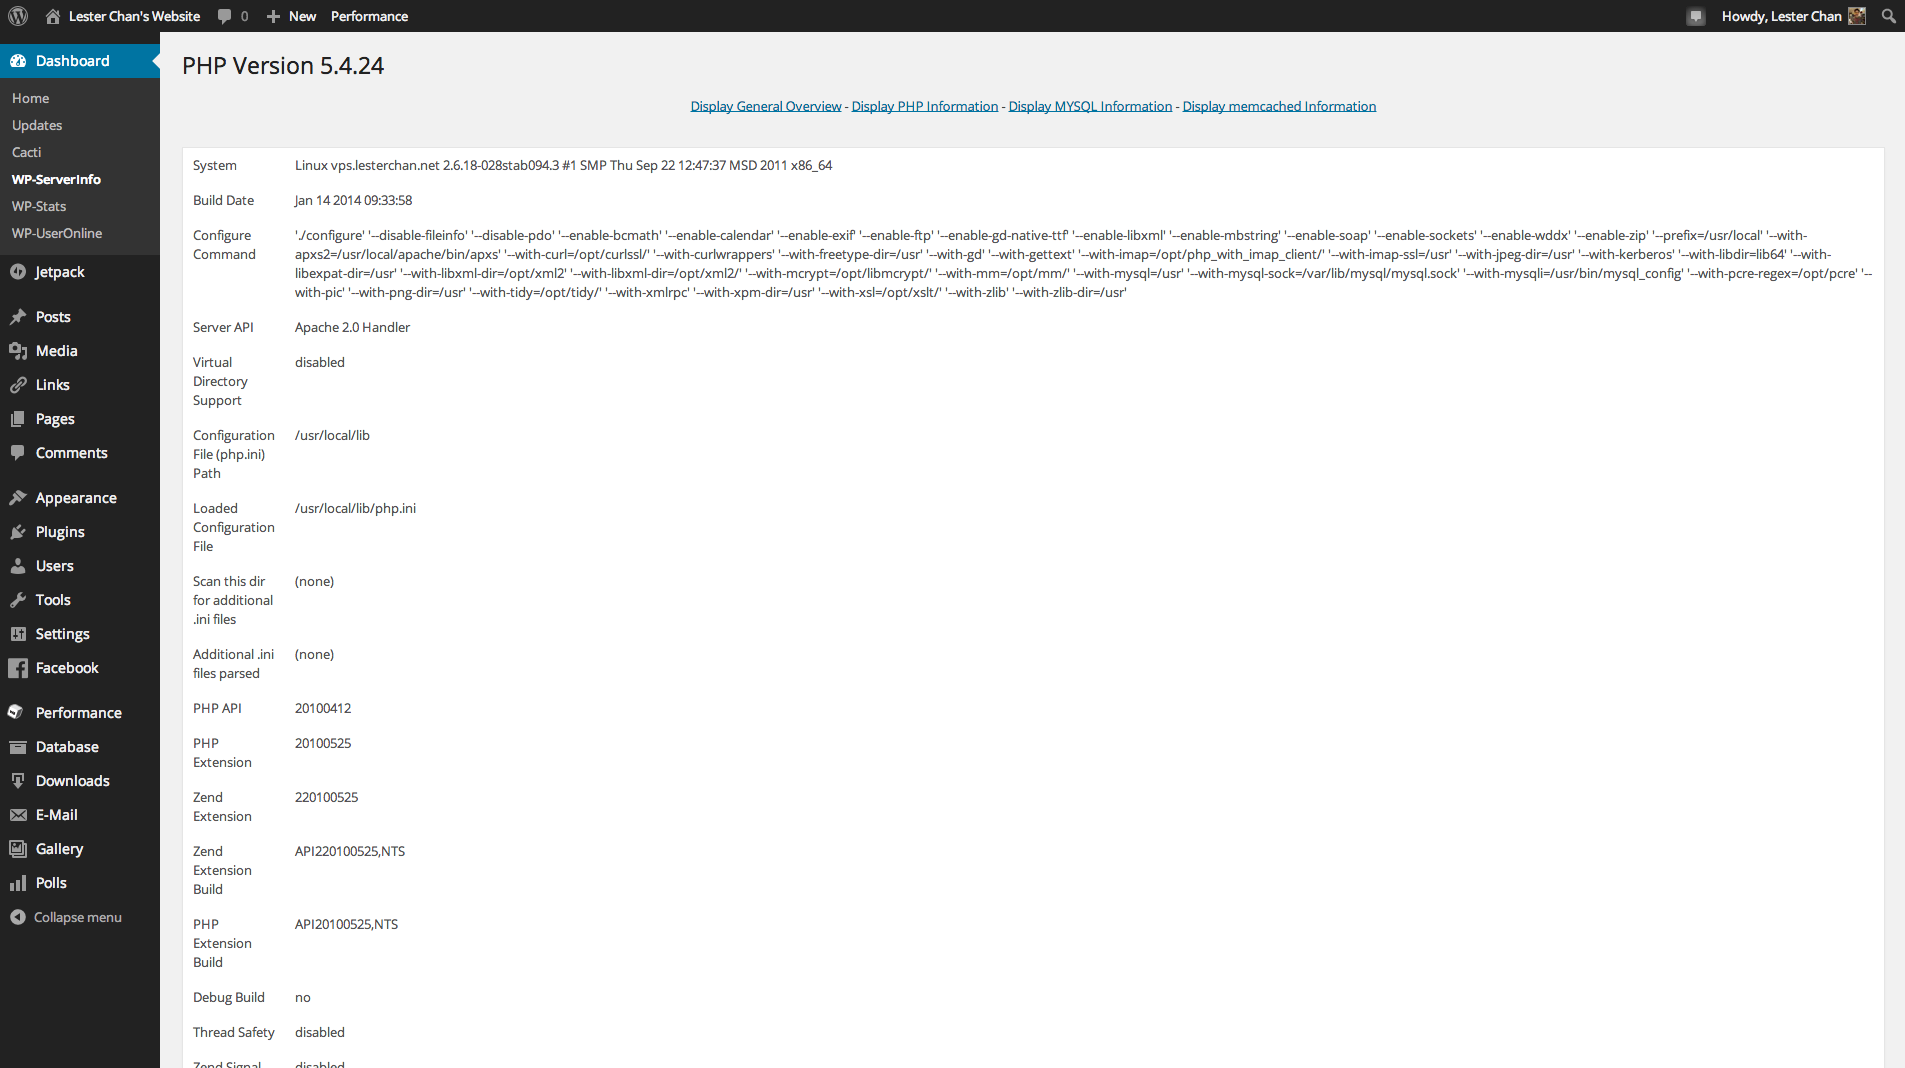 WP-ServerInfo's Screenshot: PHP Info